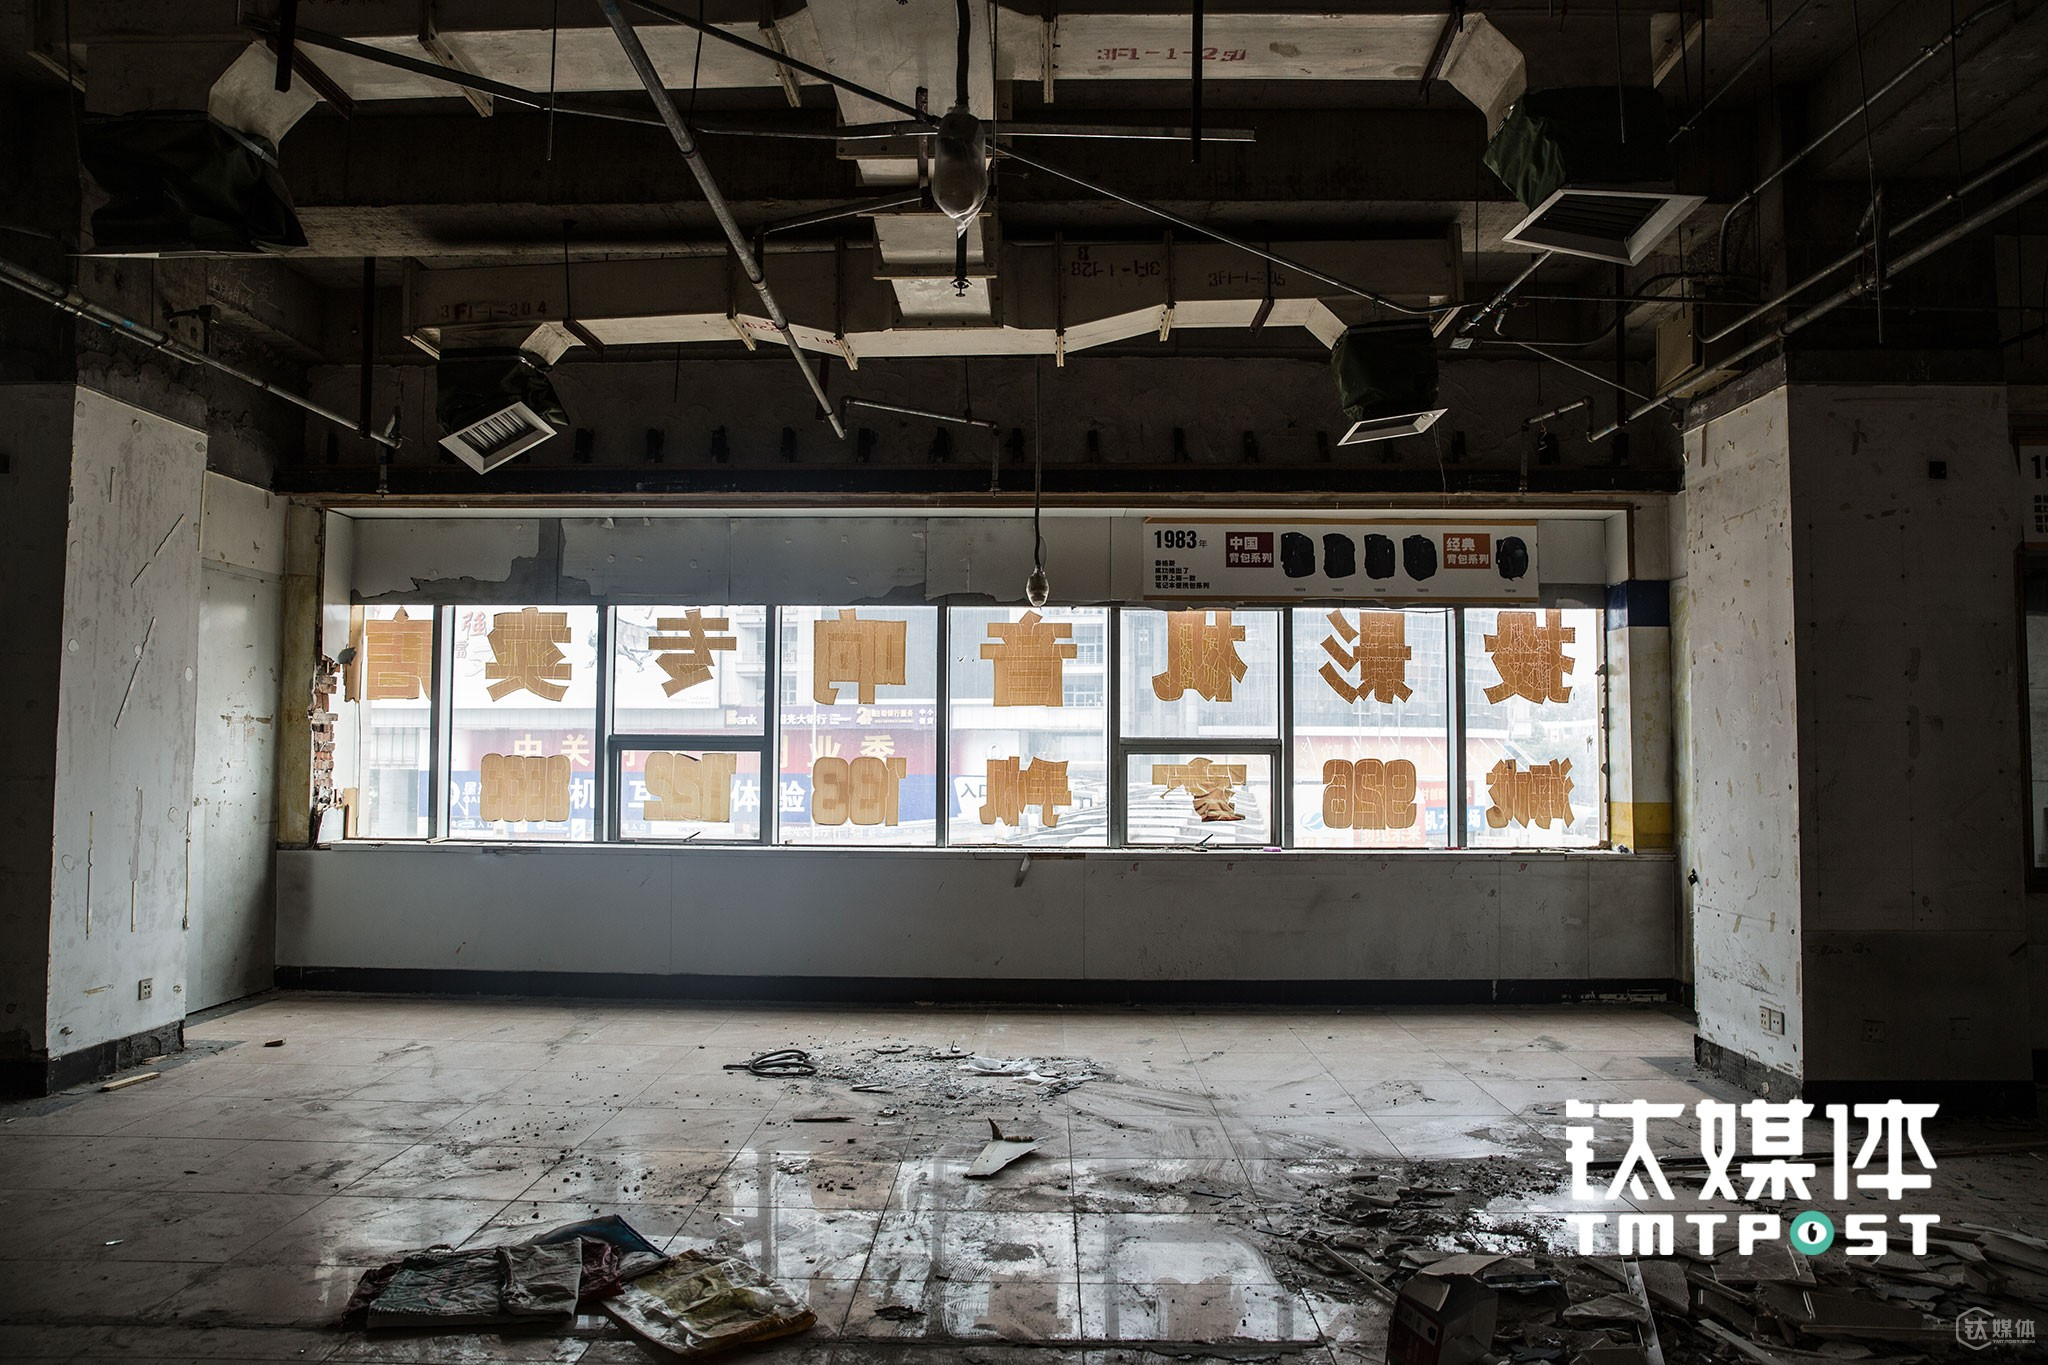 The 17-year-old Hilon Electronics Mall drew the curtain also in July, and the building, from the first to the fifth floor, was under decoration. According to official announcement, the place is going to be transformed into an Innovation Center for Smart Hardware.